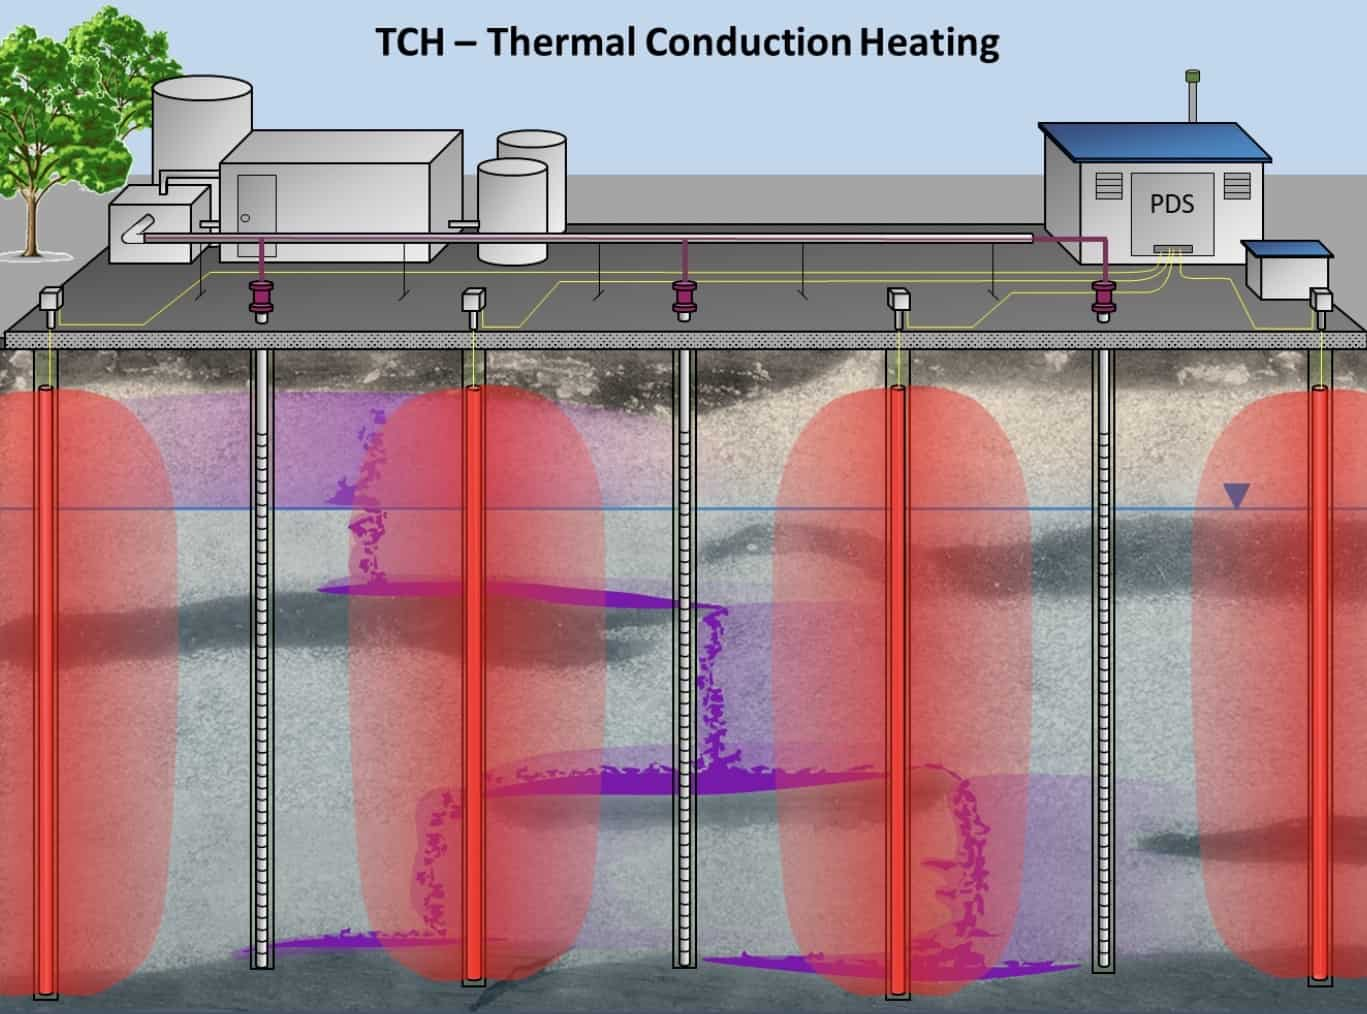 THC-thermal-conduction-heating